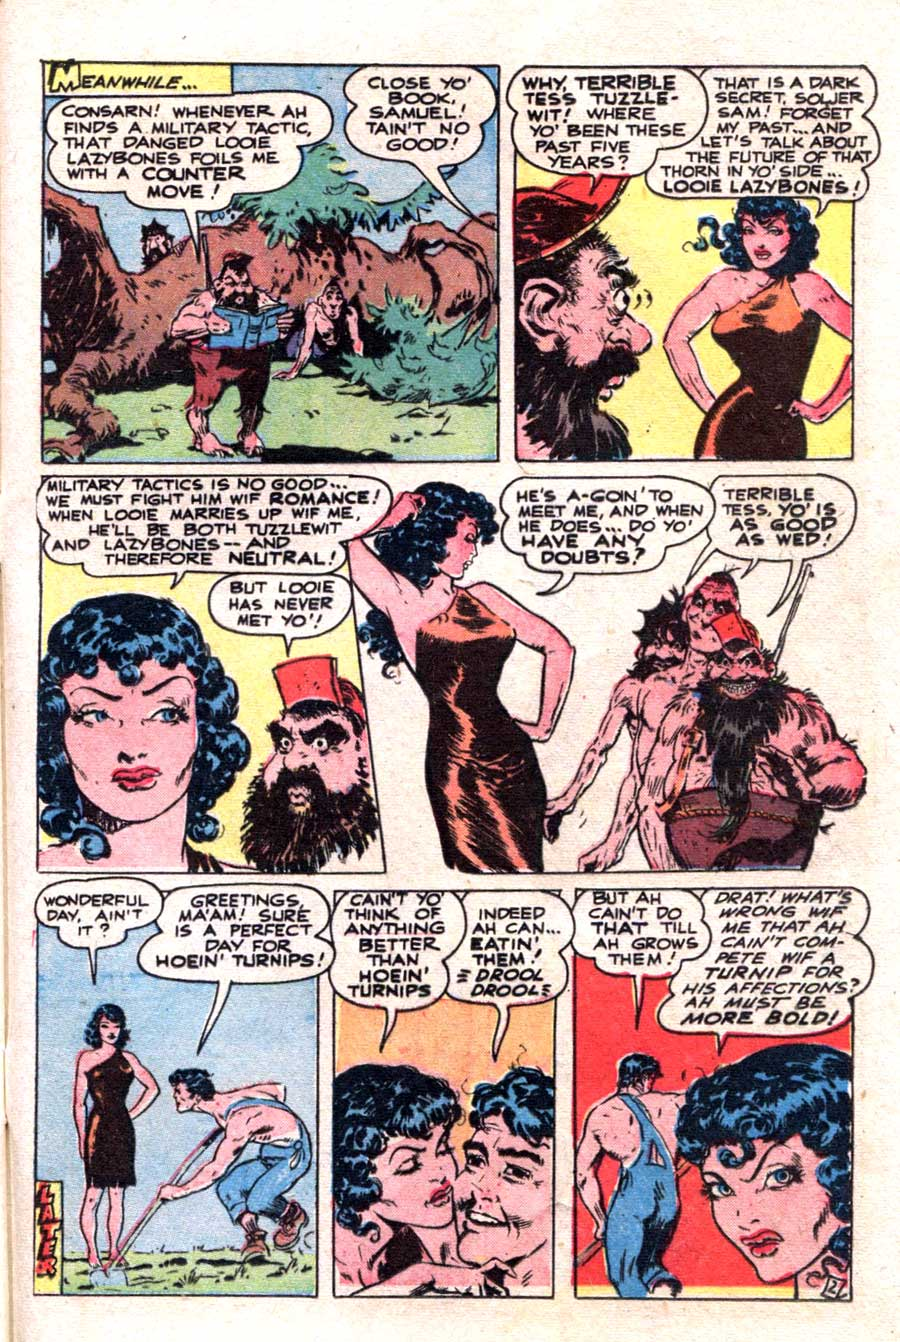 Thrilling Comics #73 golden age 1940s comic book page art by Frank Frazetta